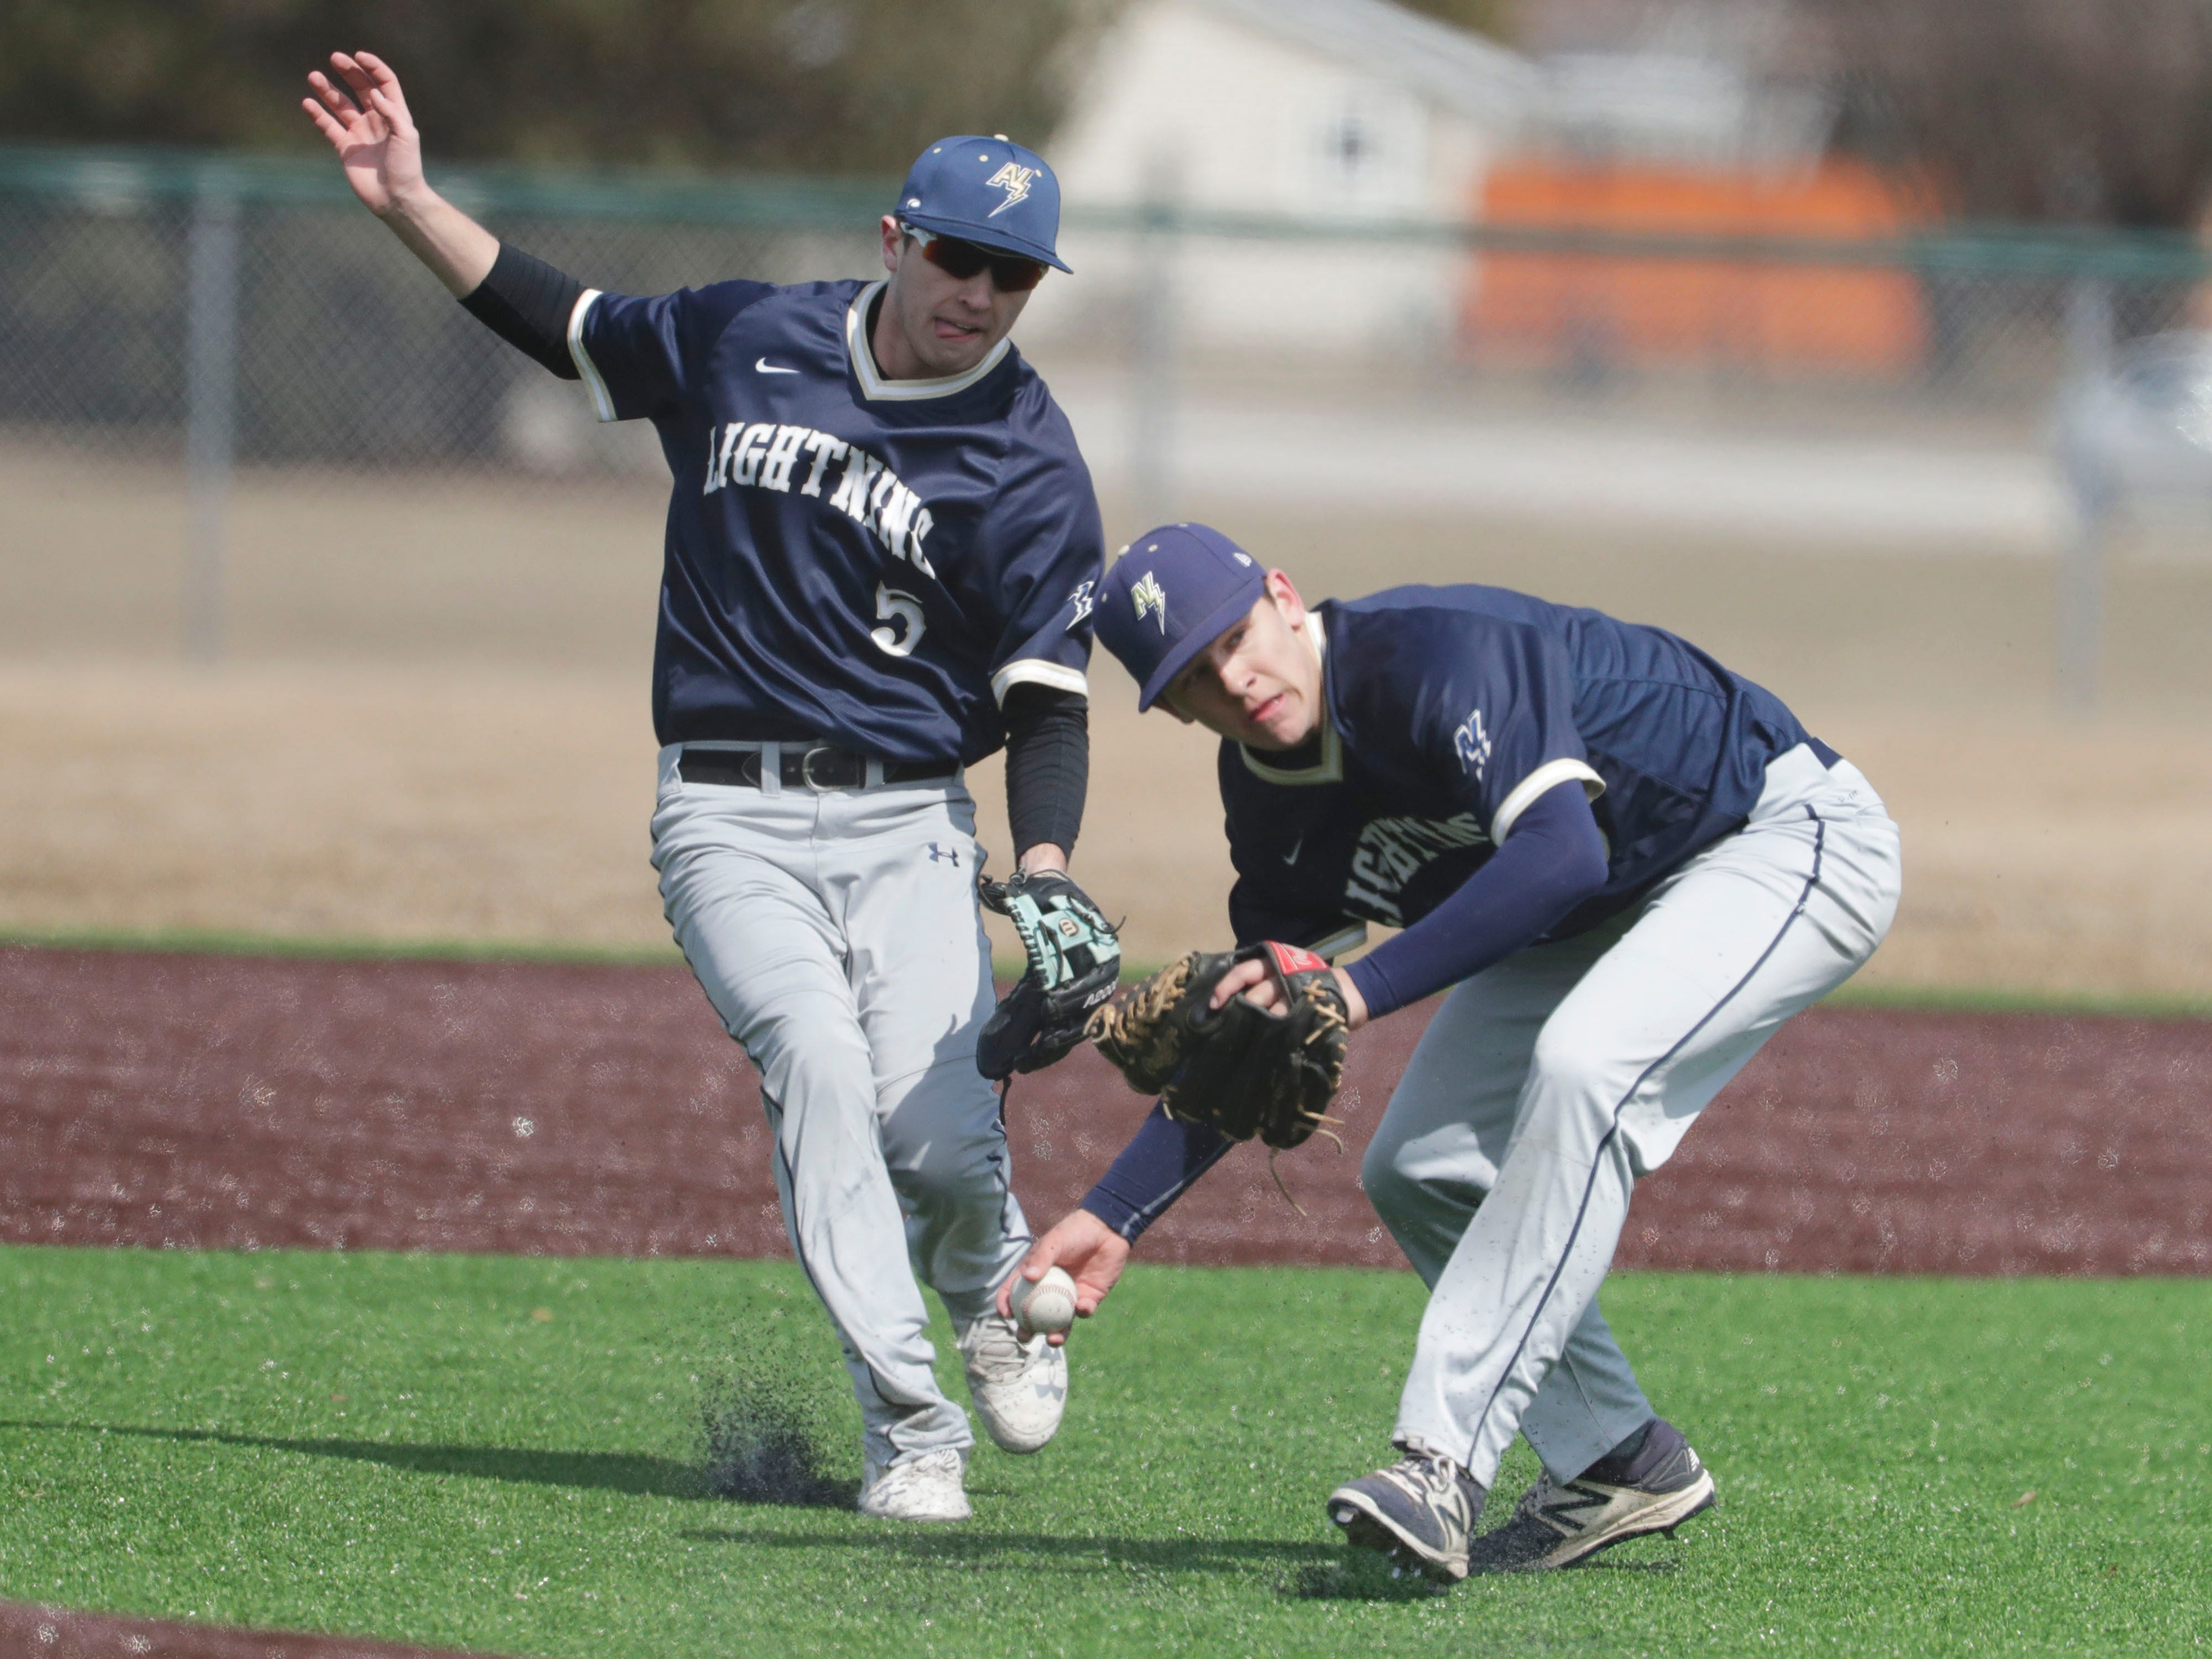 Appleton North's Wilson Zuck (3) backs off as Max Martine (5) fields the ball against Sheboygan North, Friday, March 29, 2019, at the Field of Dreams complex in Sheboygan, Wis.